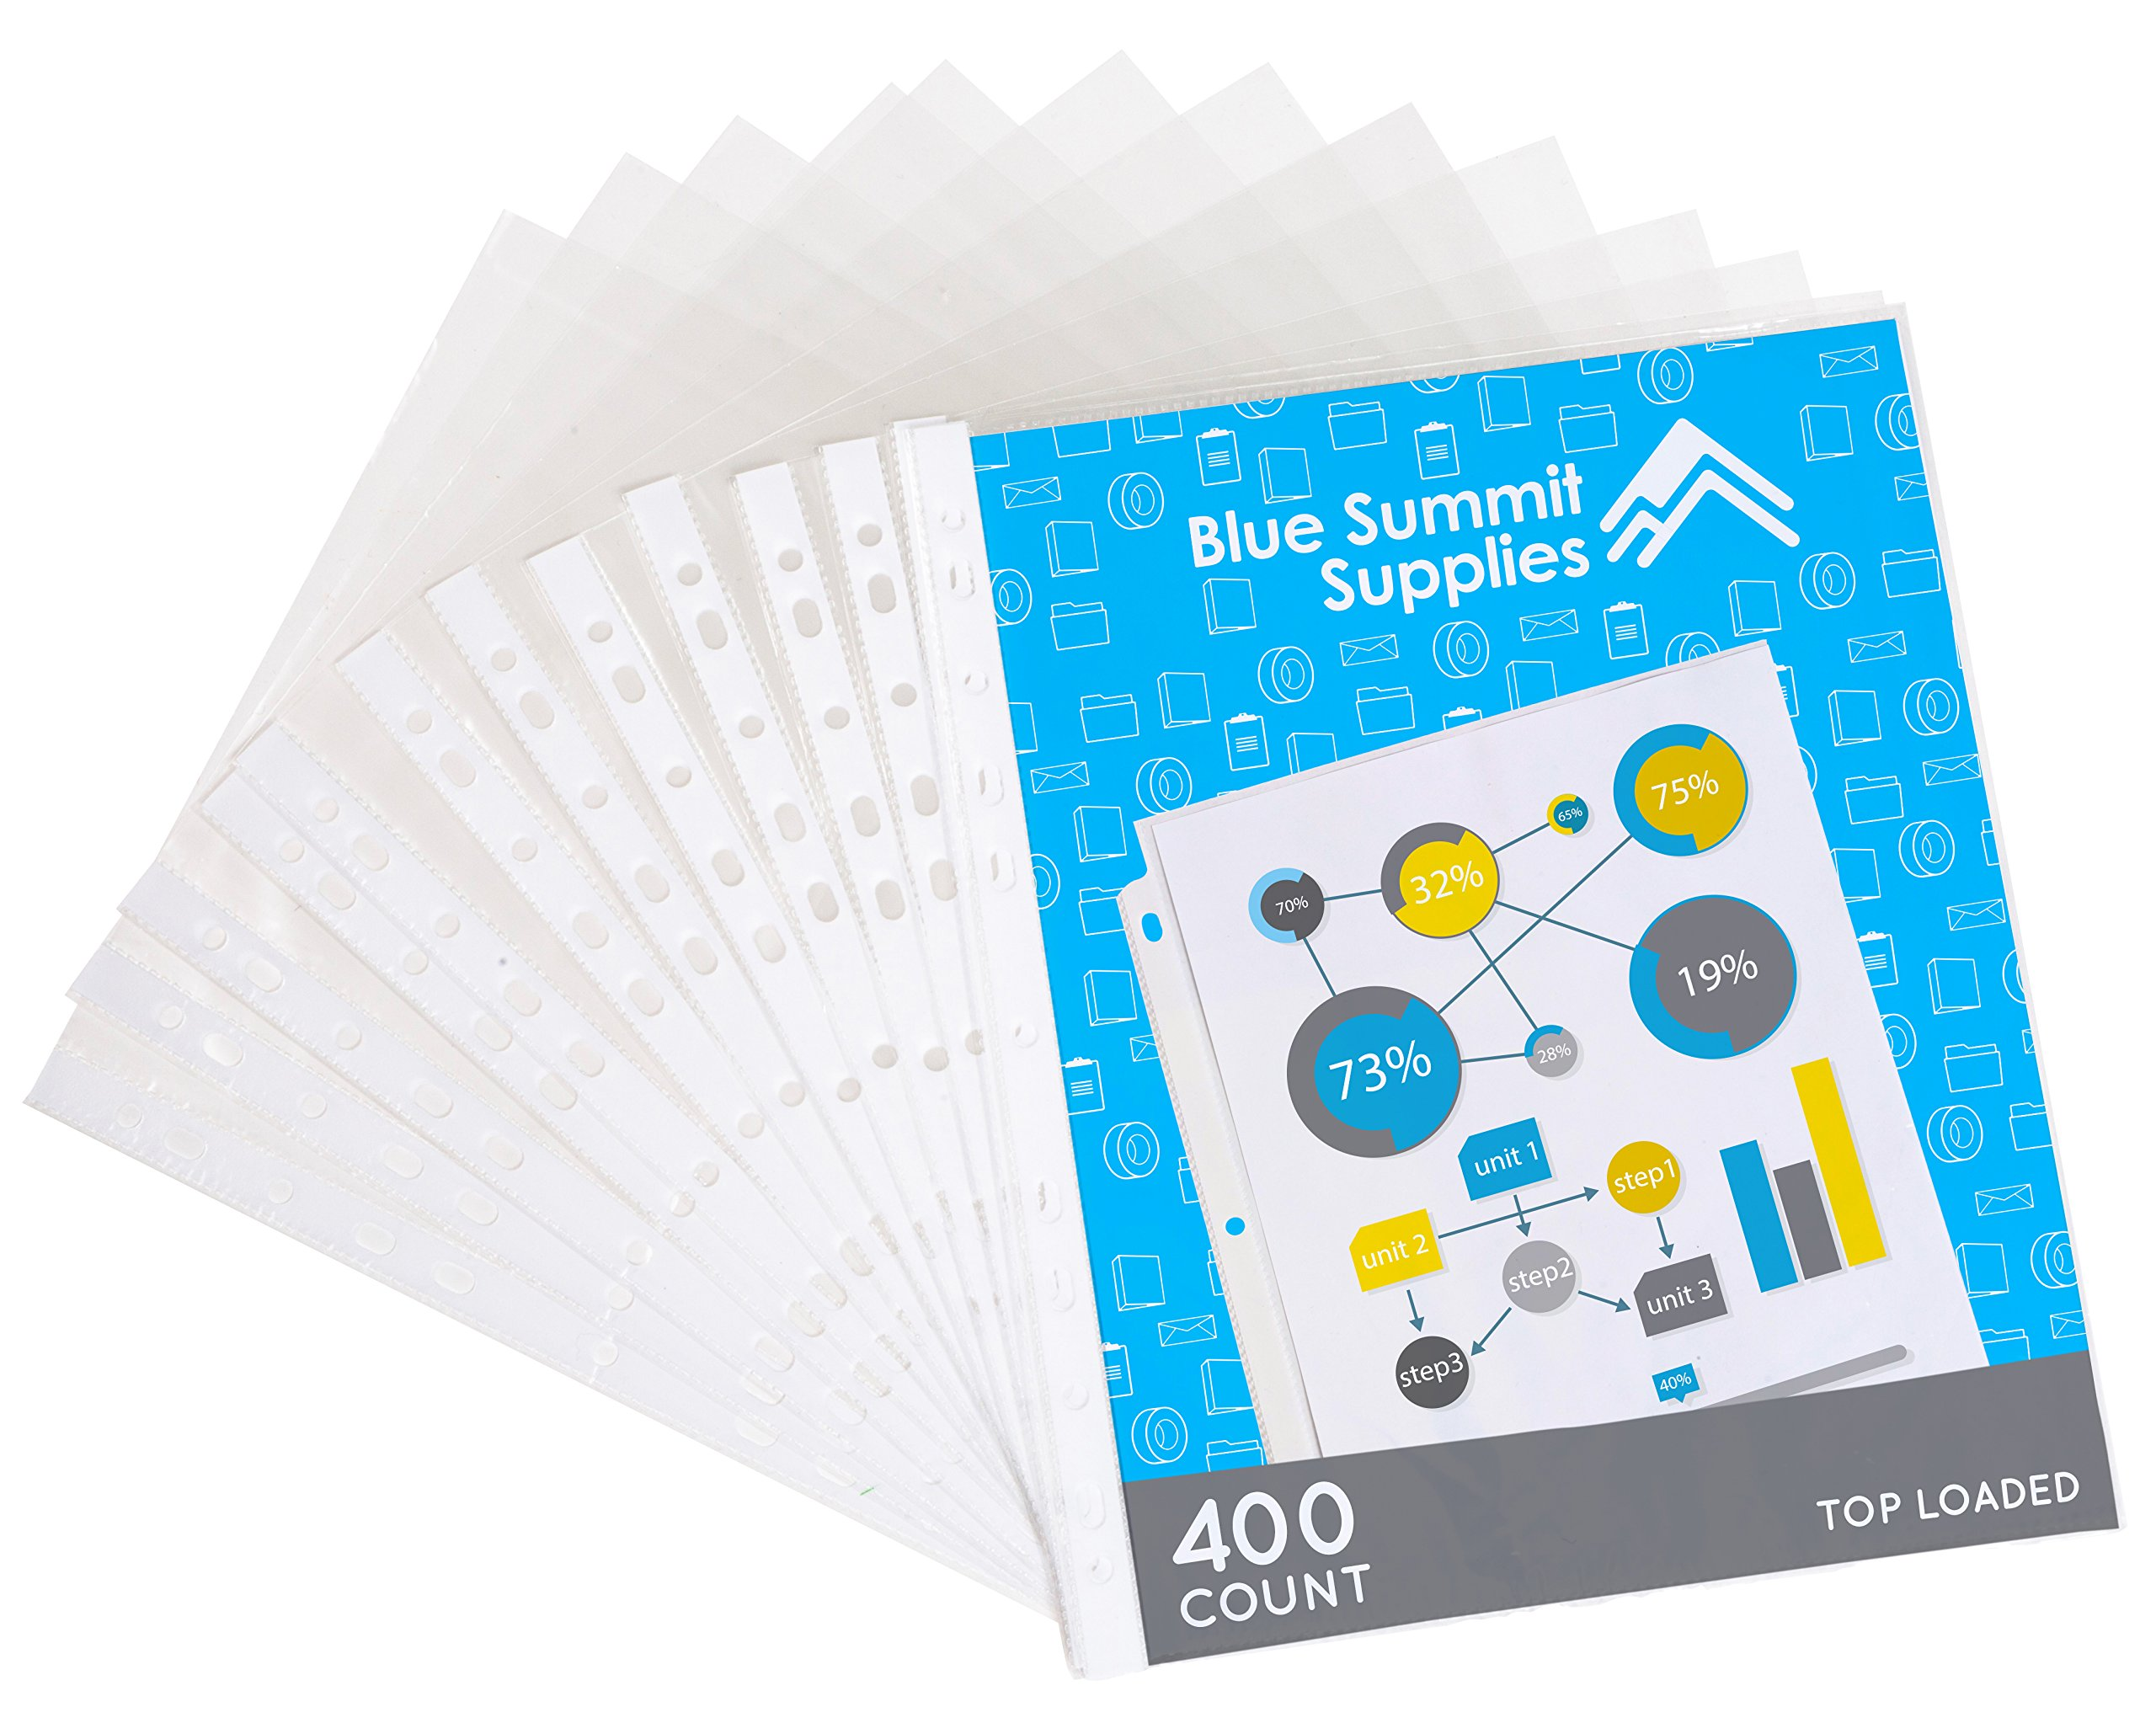 400 Sheet Protectors, 11 Hole Economy Design, designed to protect frequently used 8.5 x 11 papers, Acid and PVC Free, Clear Glare Free design, 9.25 x 11.25 Top loaded, 400 PACK